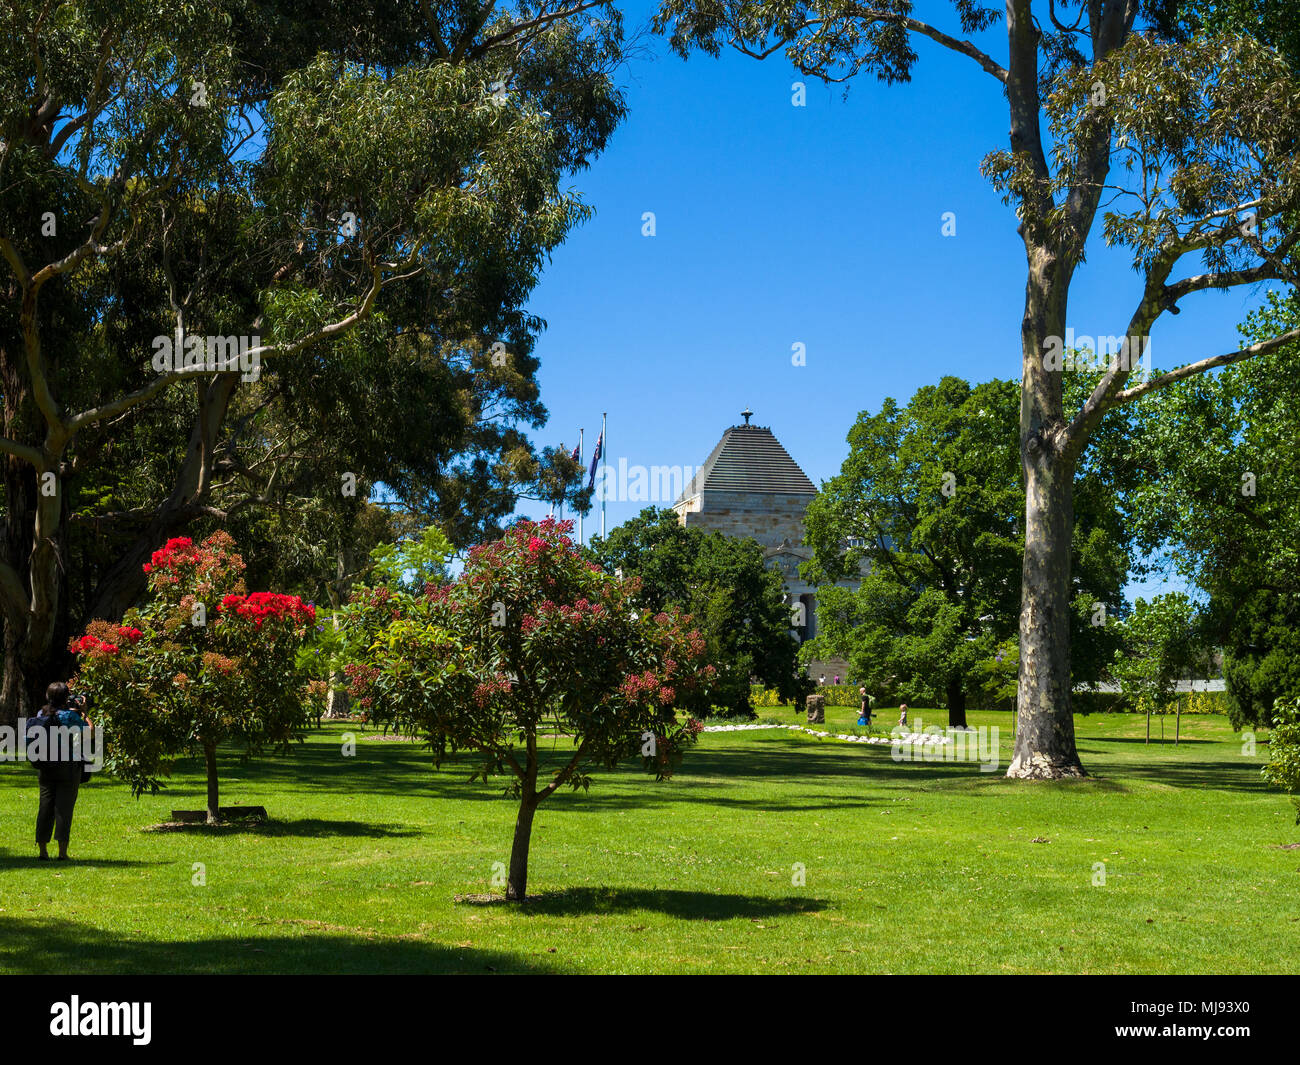 Kings Domain parkland with view of the Shrine of Remembrance, Melbourne, Victoria, Australia. - Stock Image